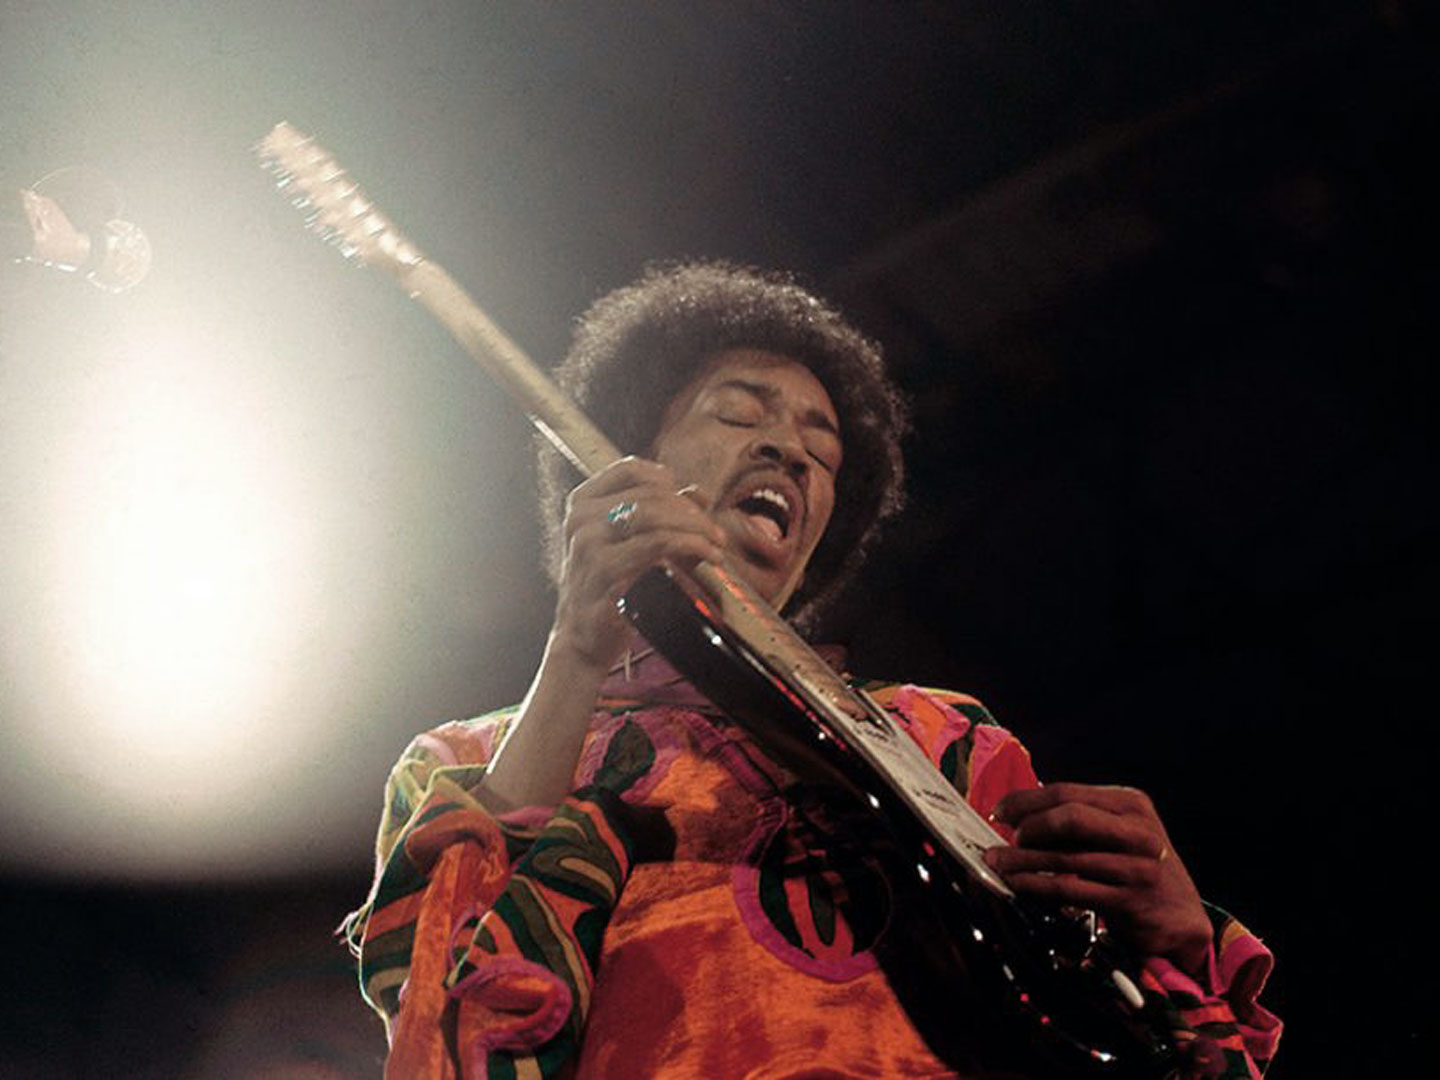 Jimi Hendrix performing live at the Isle of Wright